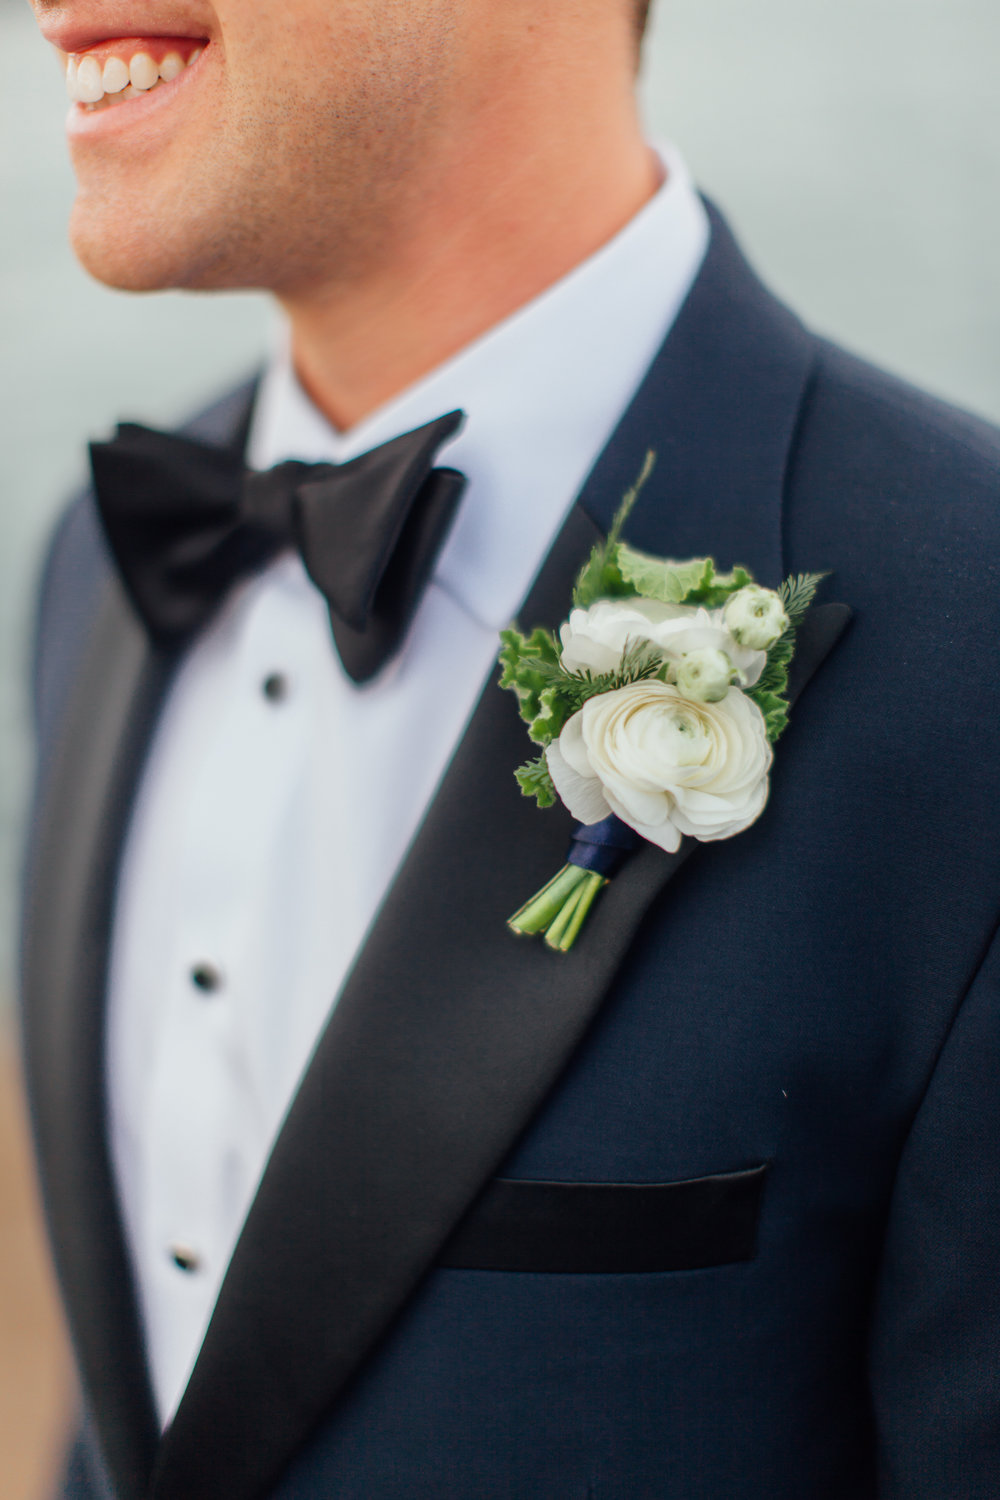 groom, boutonniere, bow tie, adler planetarium, wrap it up parties